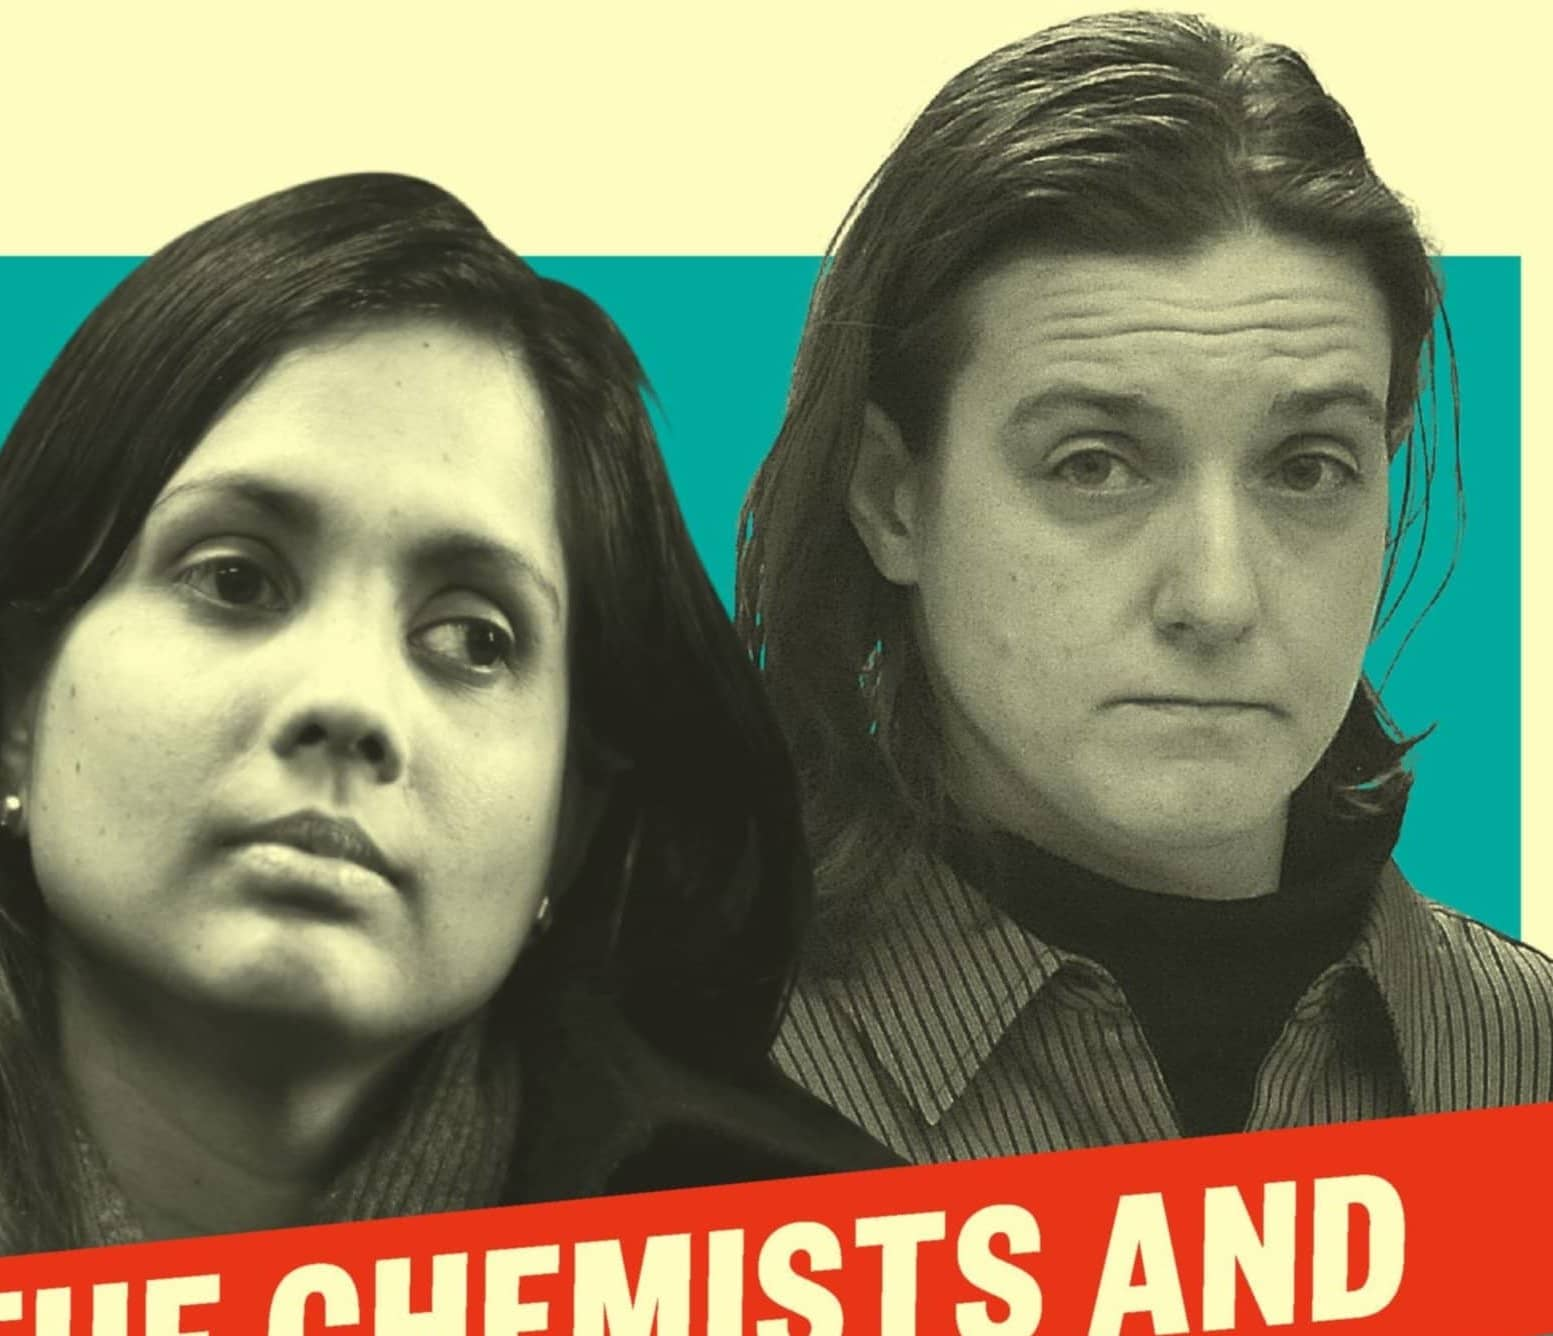 The Chemists And The Cover Up